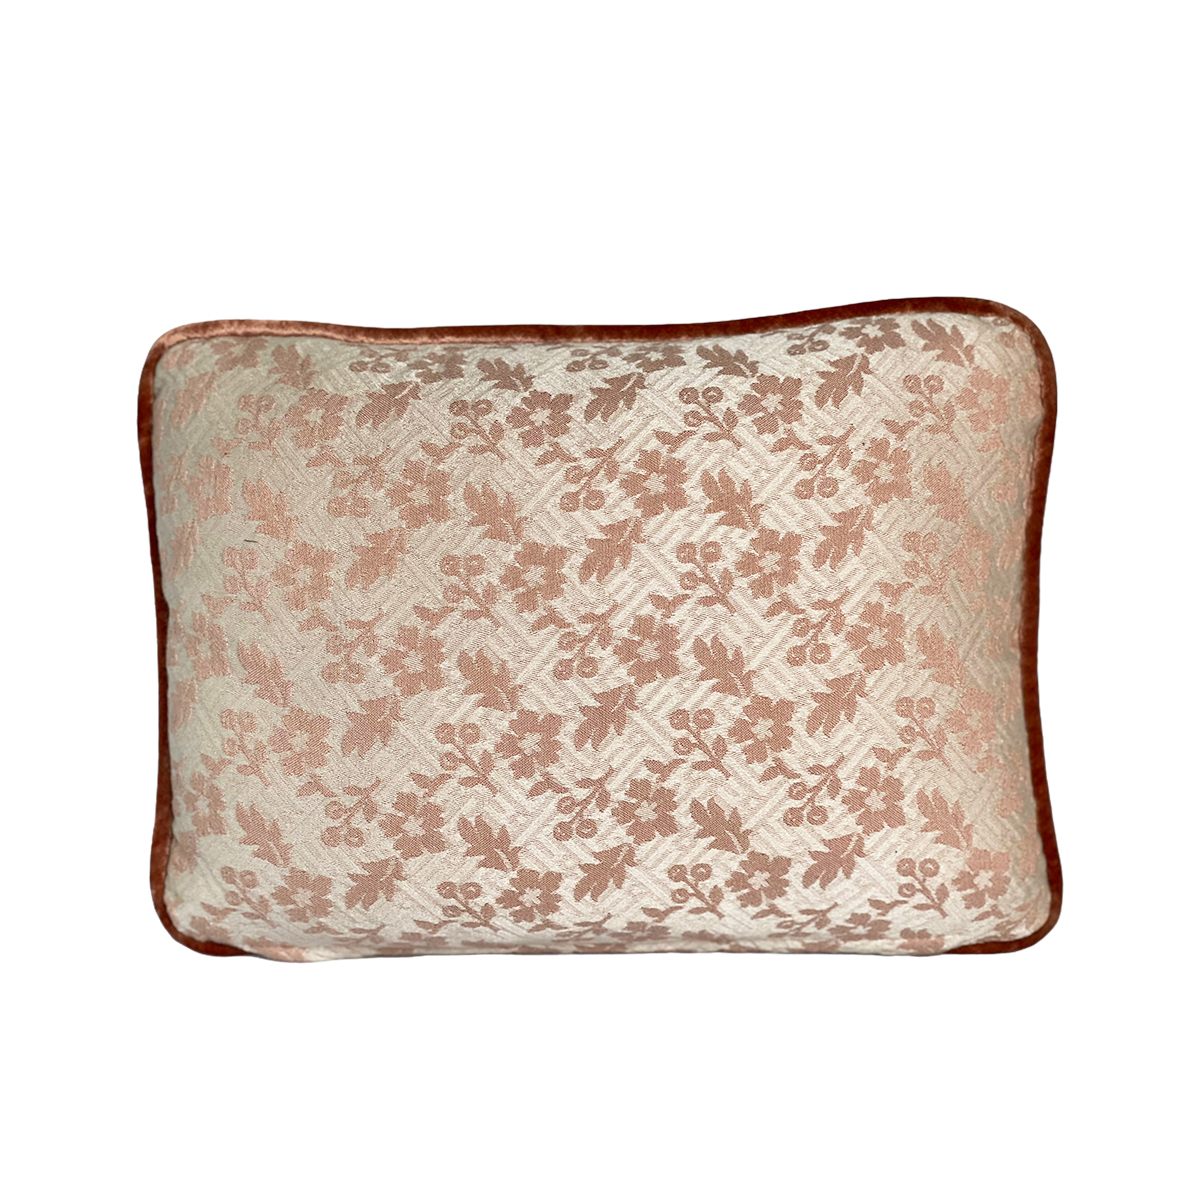 Cabbage Roses Garden – Single Accent Pillow 10 x 14, Pair available